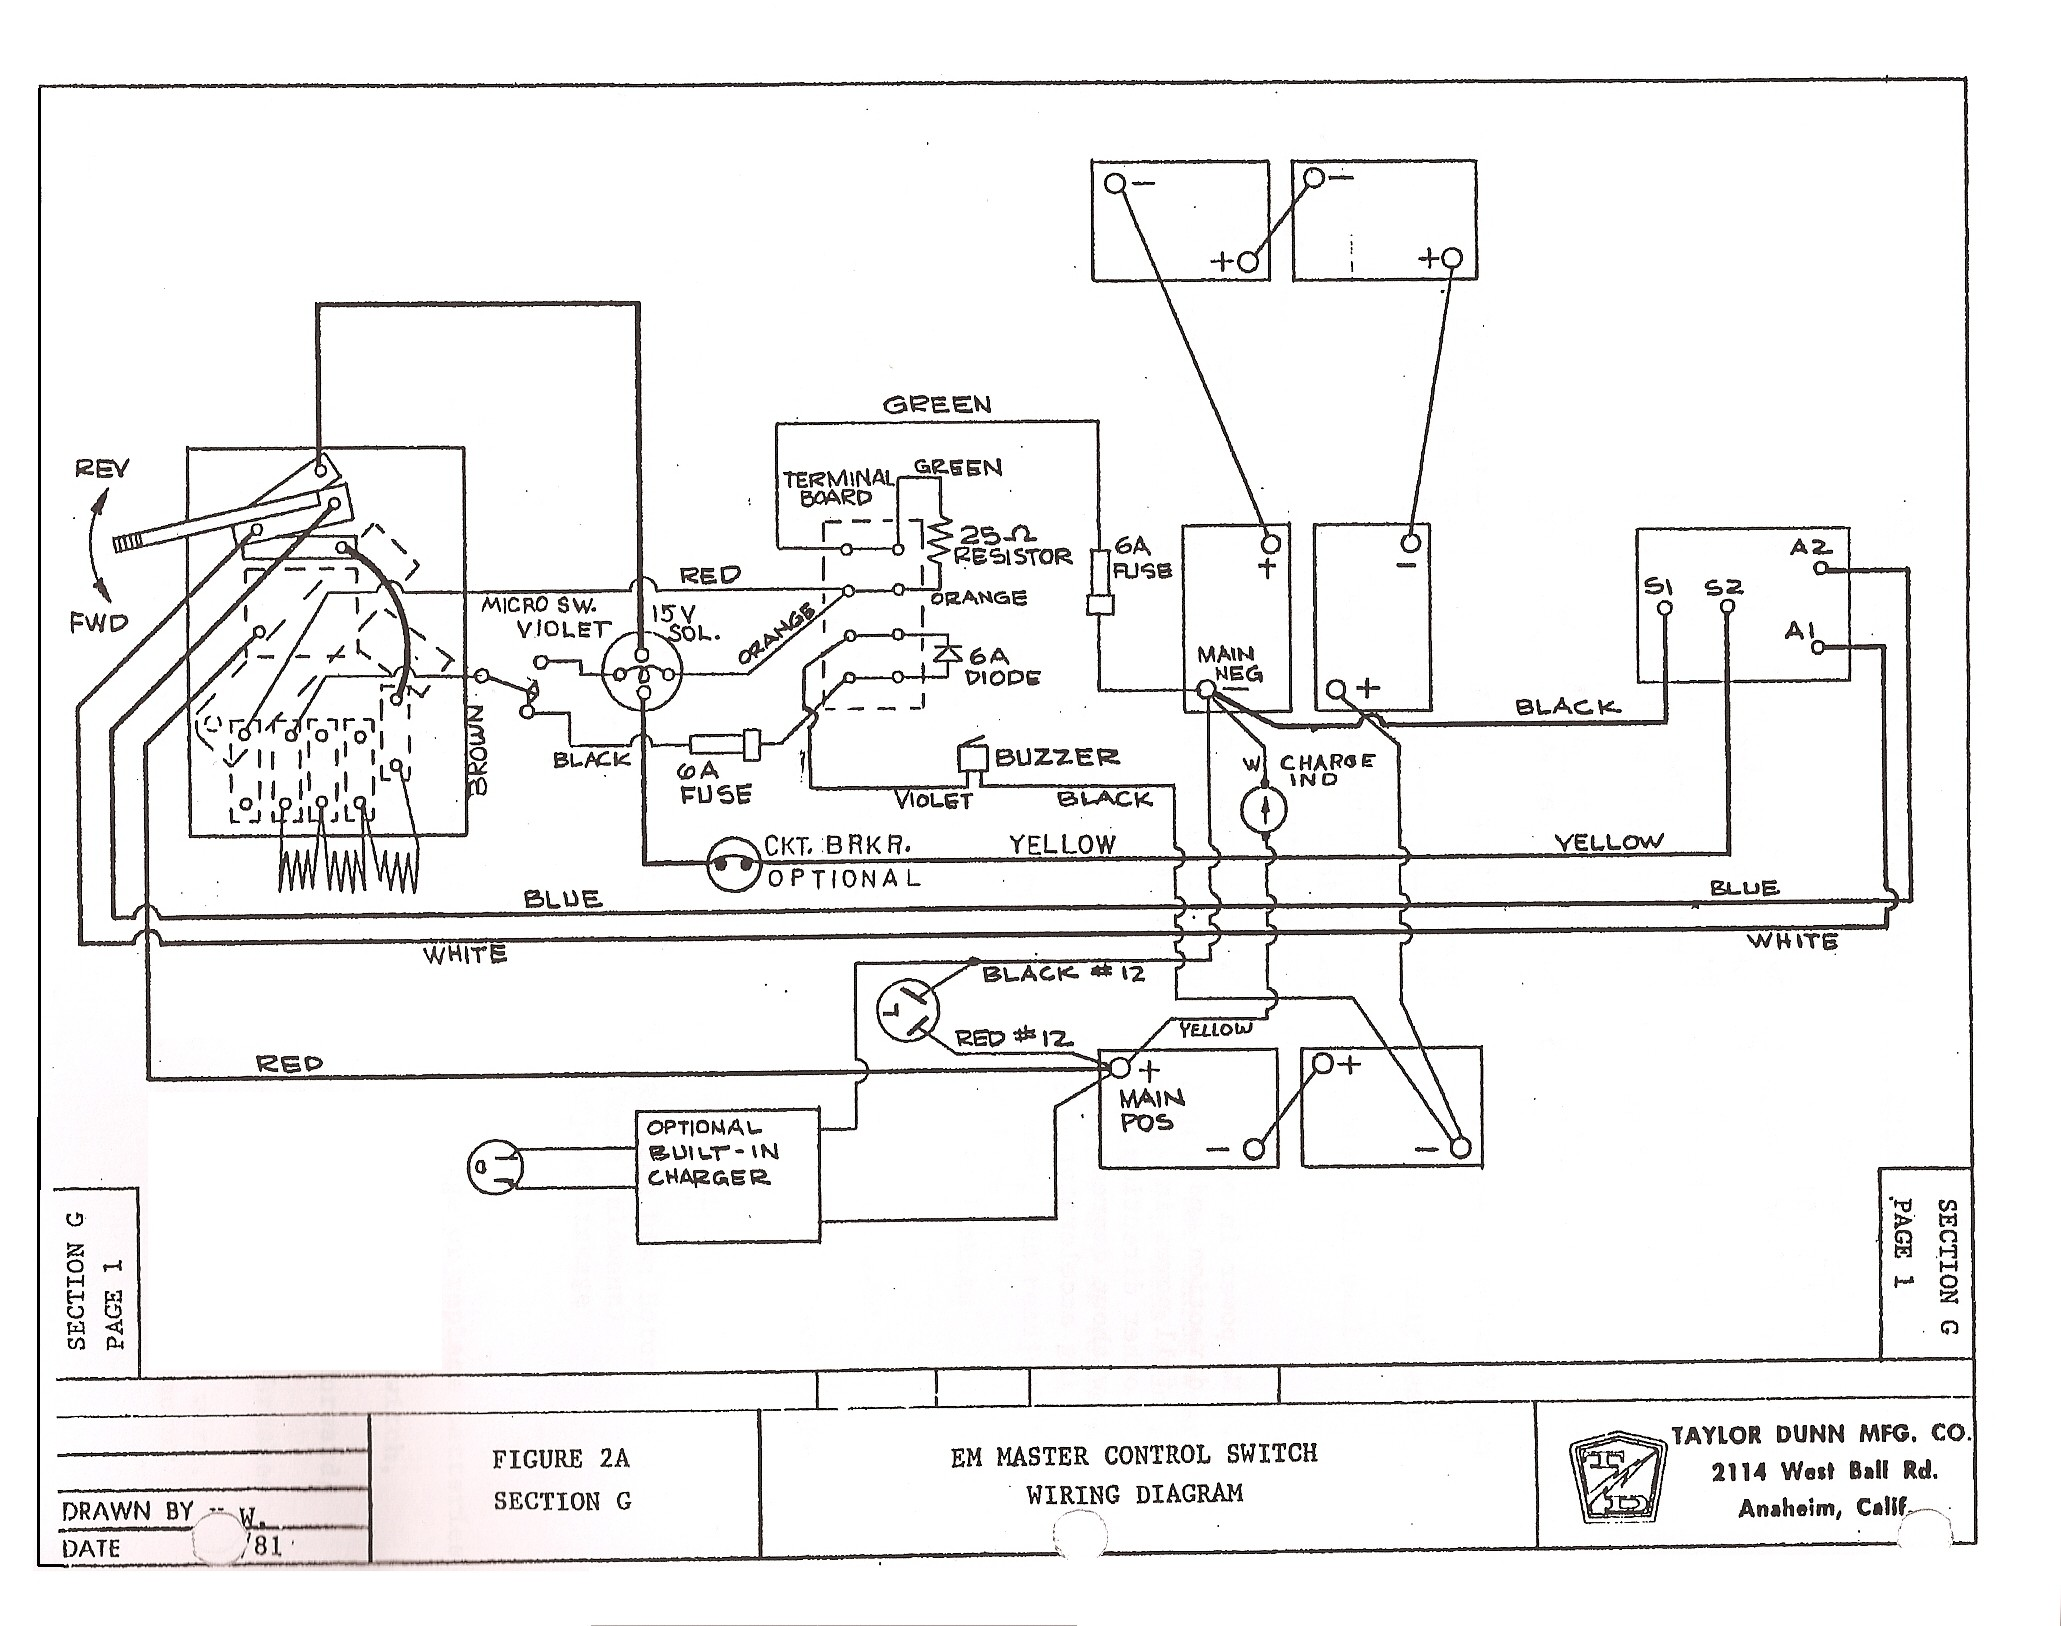 1994 Ezgo Gas Engine Wiring Diagram so 6041] Cart Wiring Diagram Harley Davidson Golf Cart Of 1994 Ezgo Gas Engine Wiring Diagram 1995 Club Car Wiring Diagram